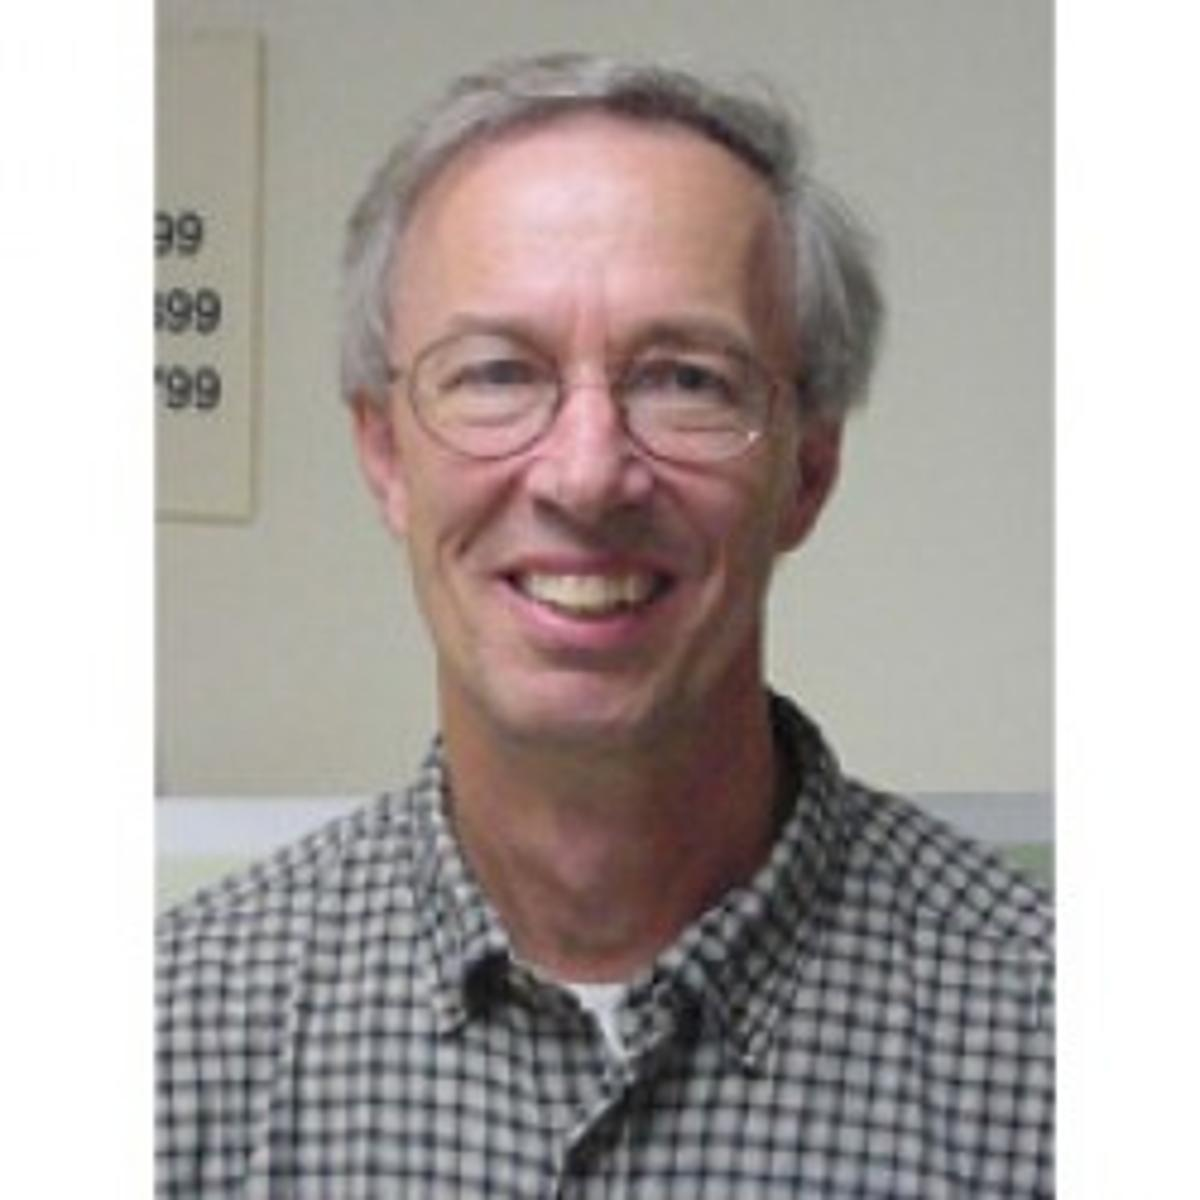 UW-Madison professor barred from lab for potentially dangerous